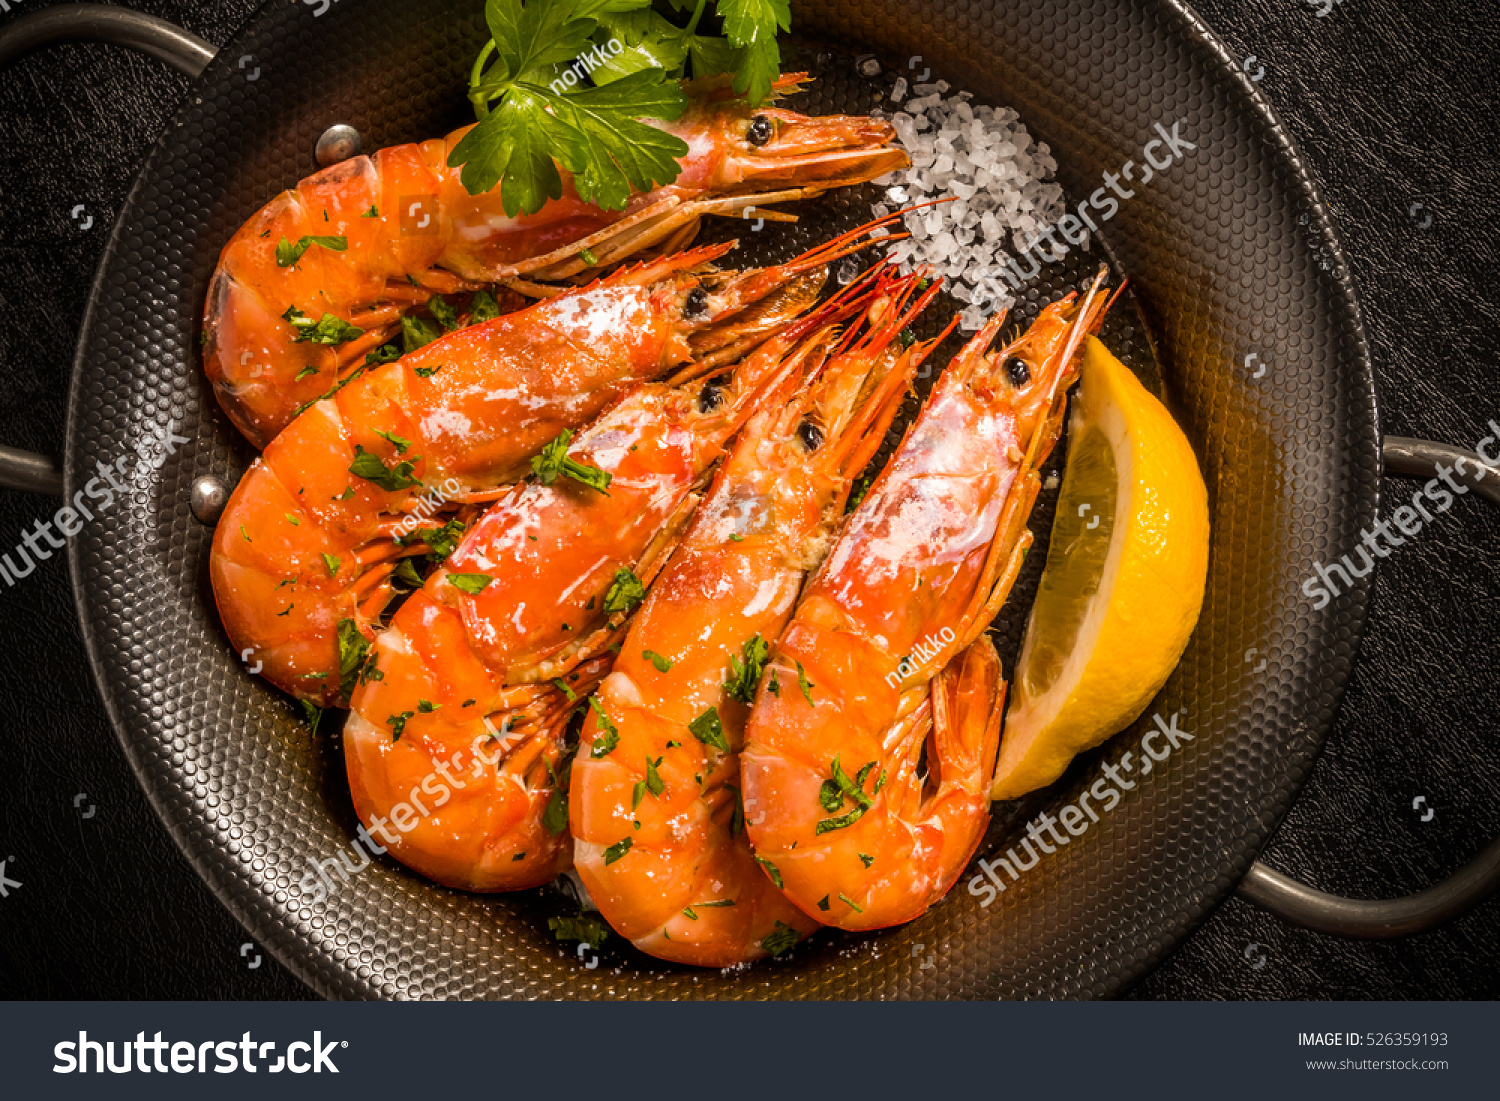 Lemon Parsley Source Capitate Shrimpa La Stock Photo 526359193 ...